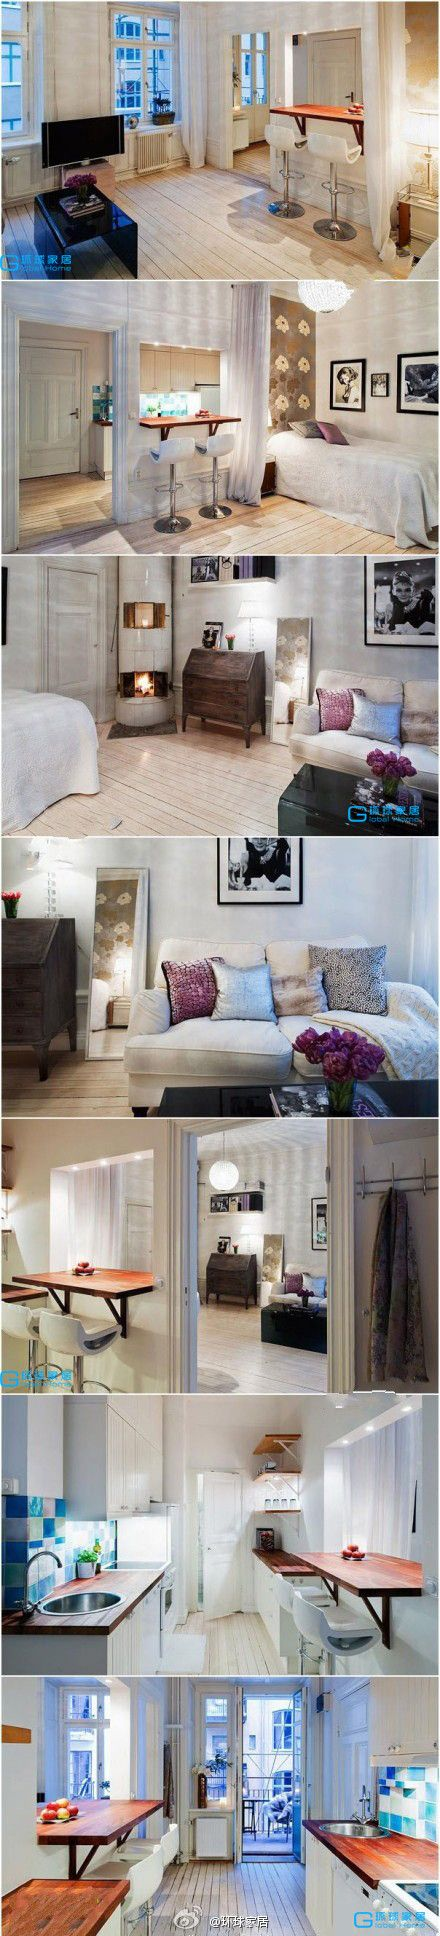 All in 420 square feet. I love how the dinning space is divided between two rooms. Brilliant!!